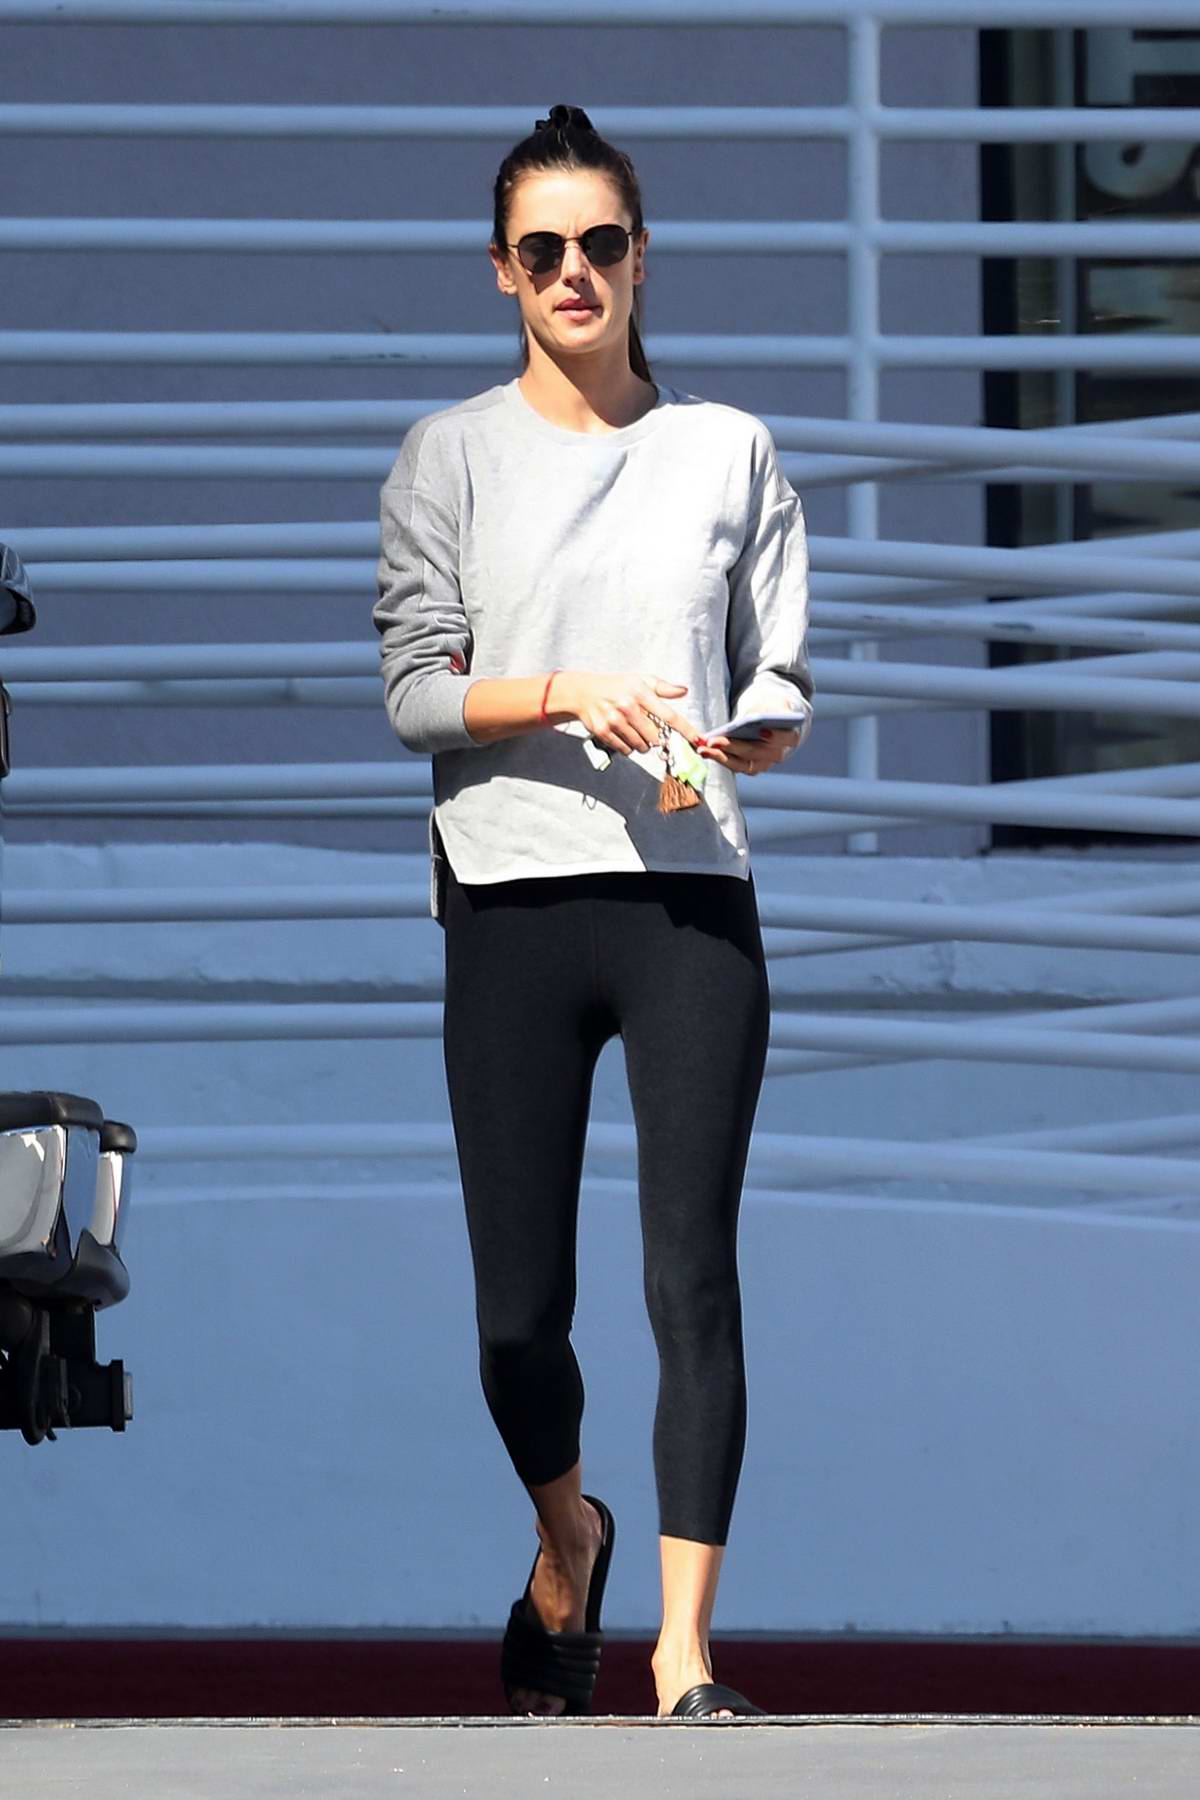 Alessandra Ambrosio stops by at Pacific Coast Sports Medicine in Brentwood, Los Angeles